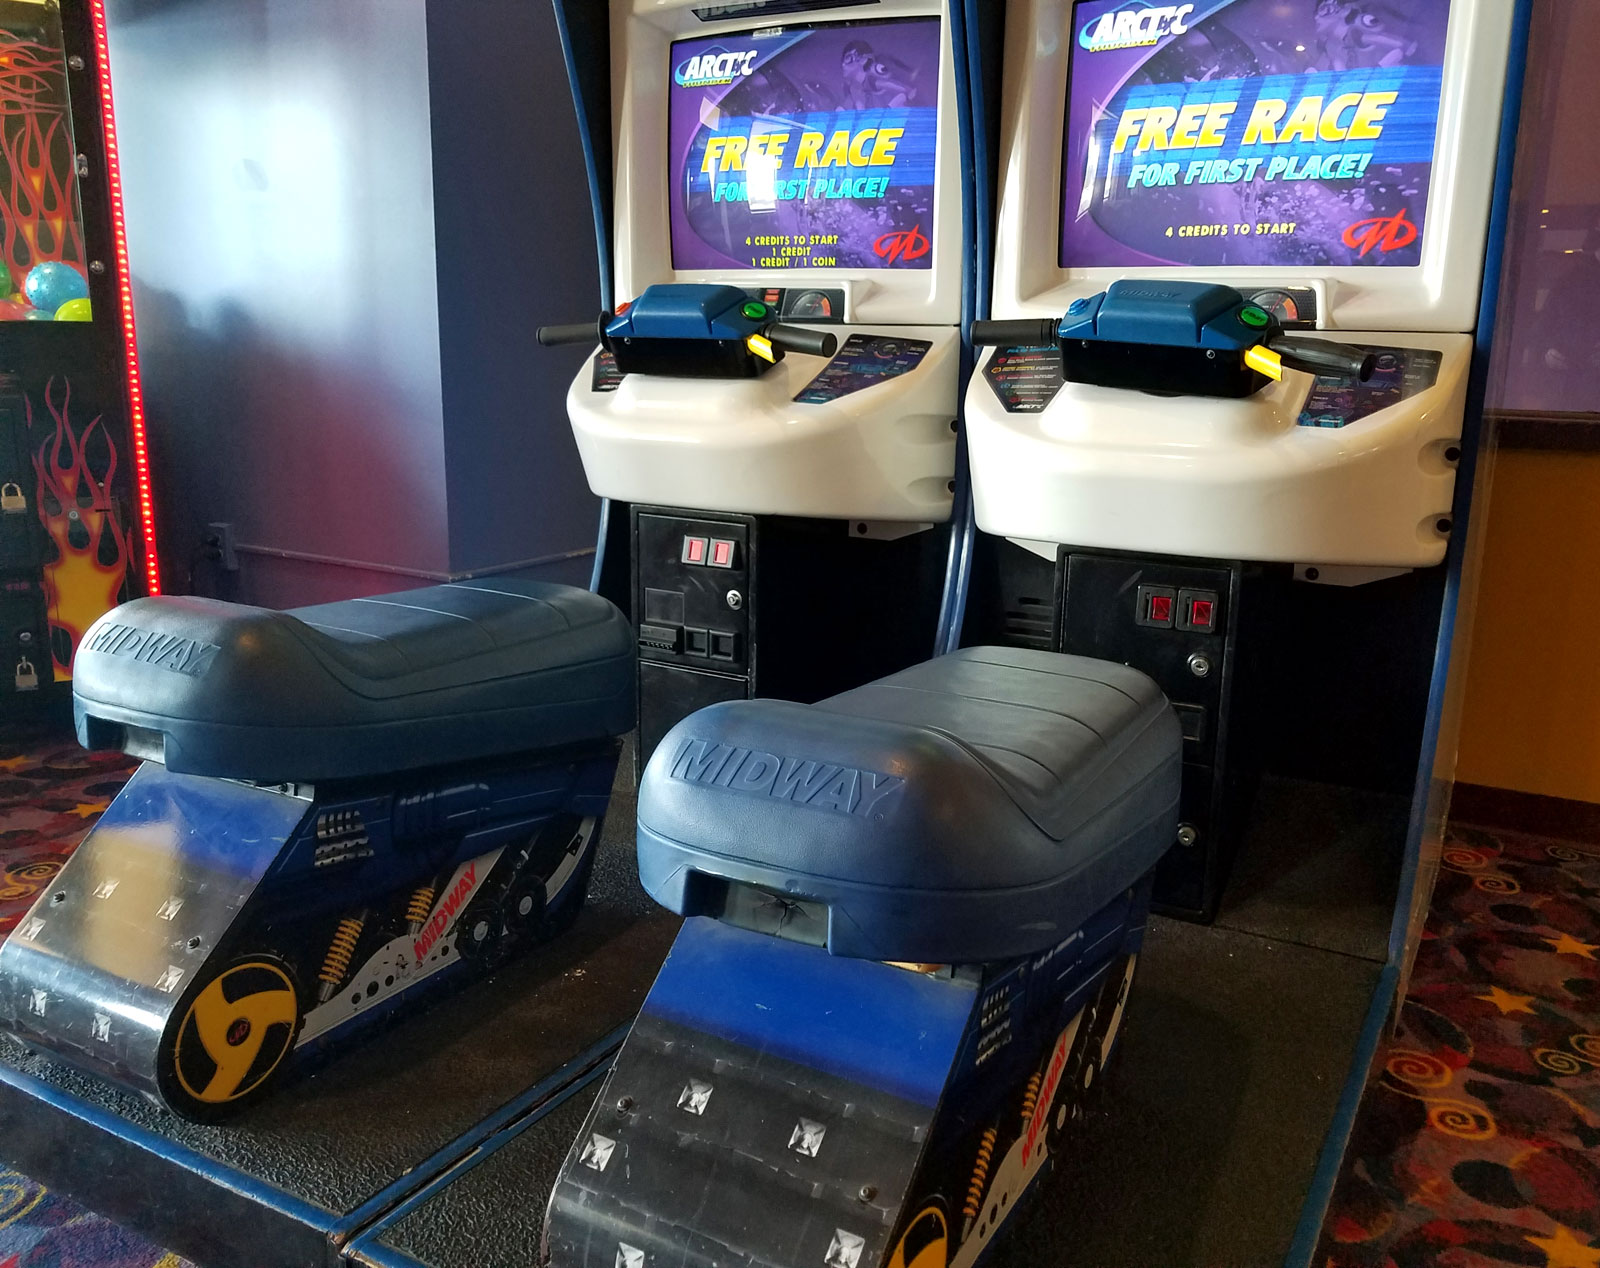 Midway's Arctic Thunder arcade game